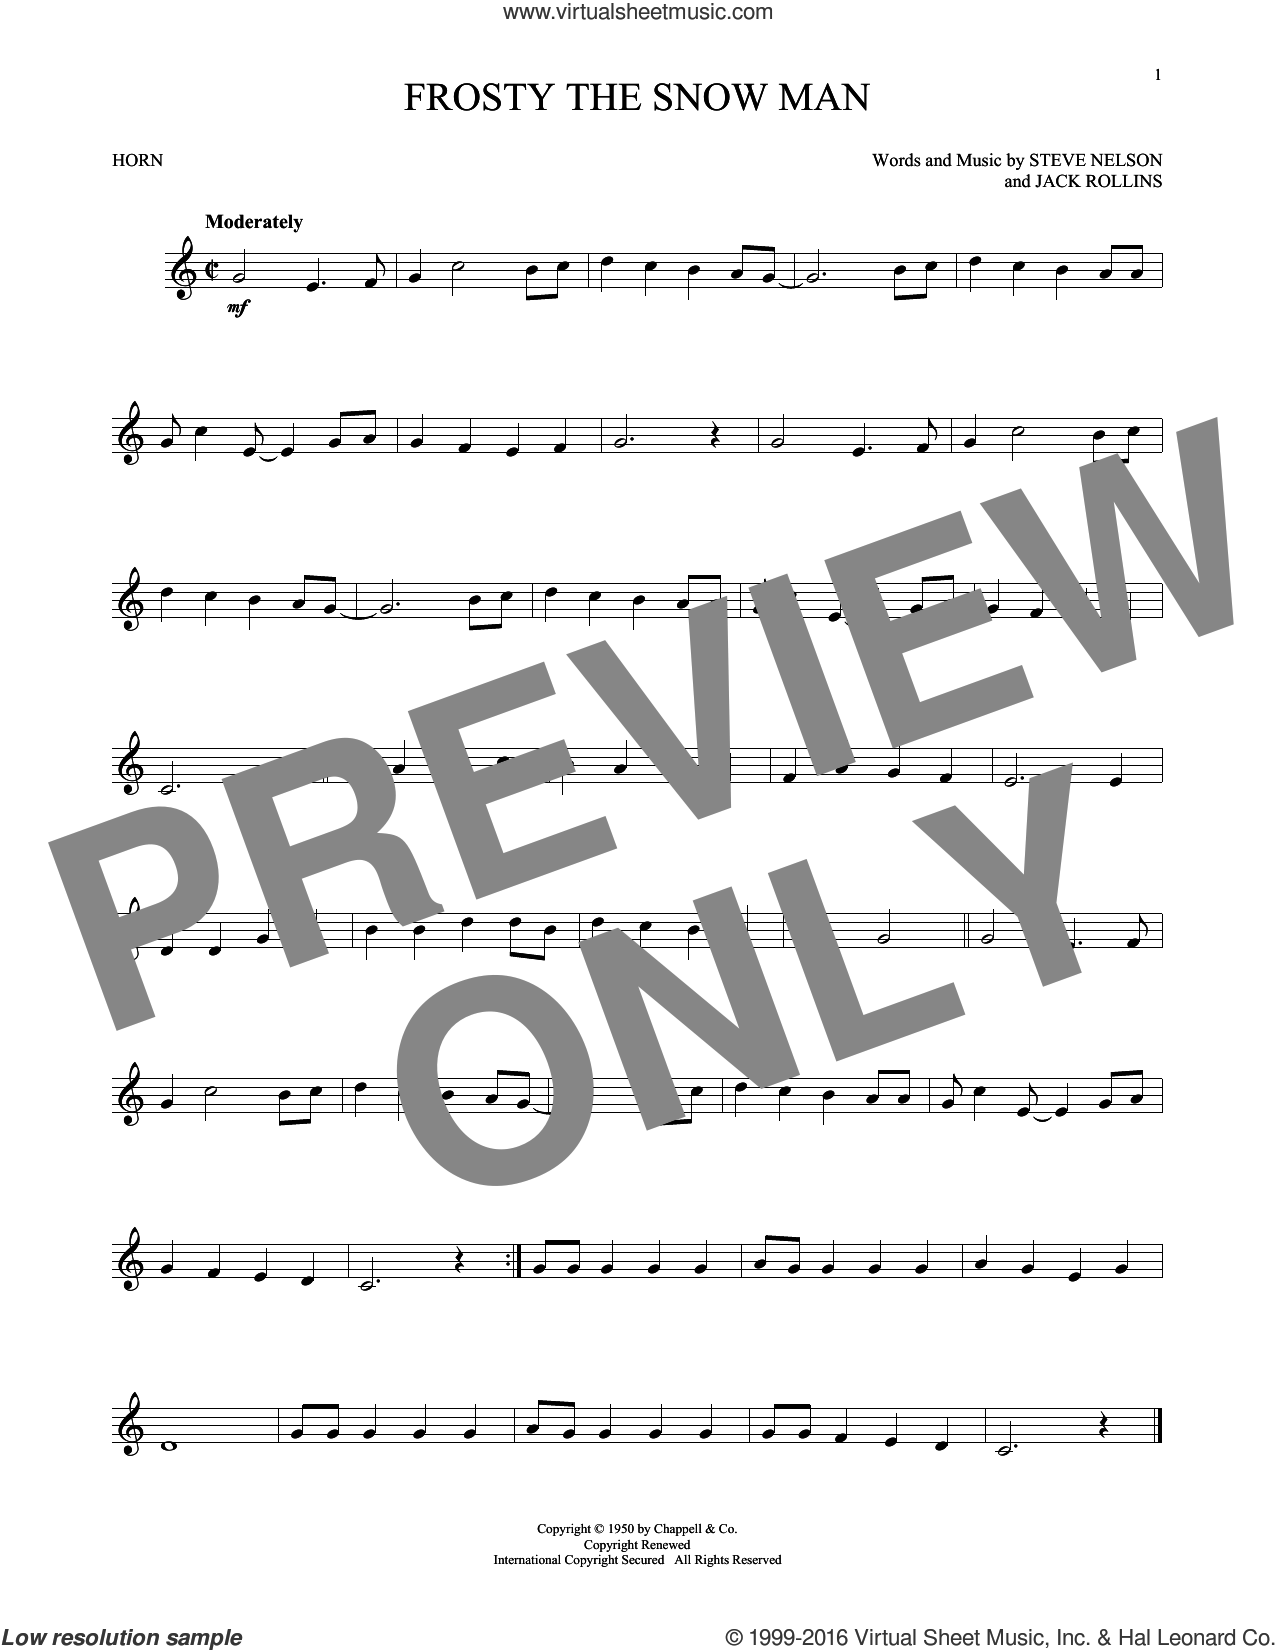 Frosty The Snow Man sheet music for horn solo by Steve Nelson and Jack Rollins. Score Image Preview.